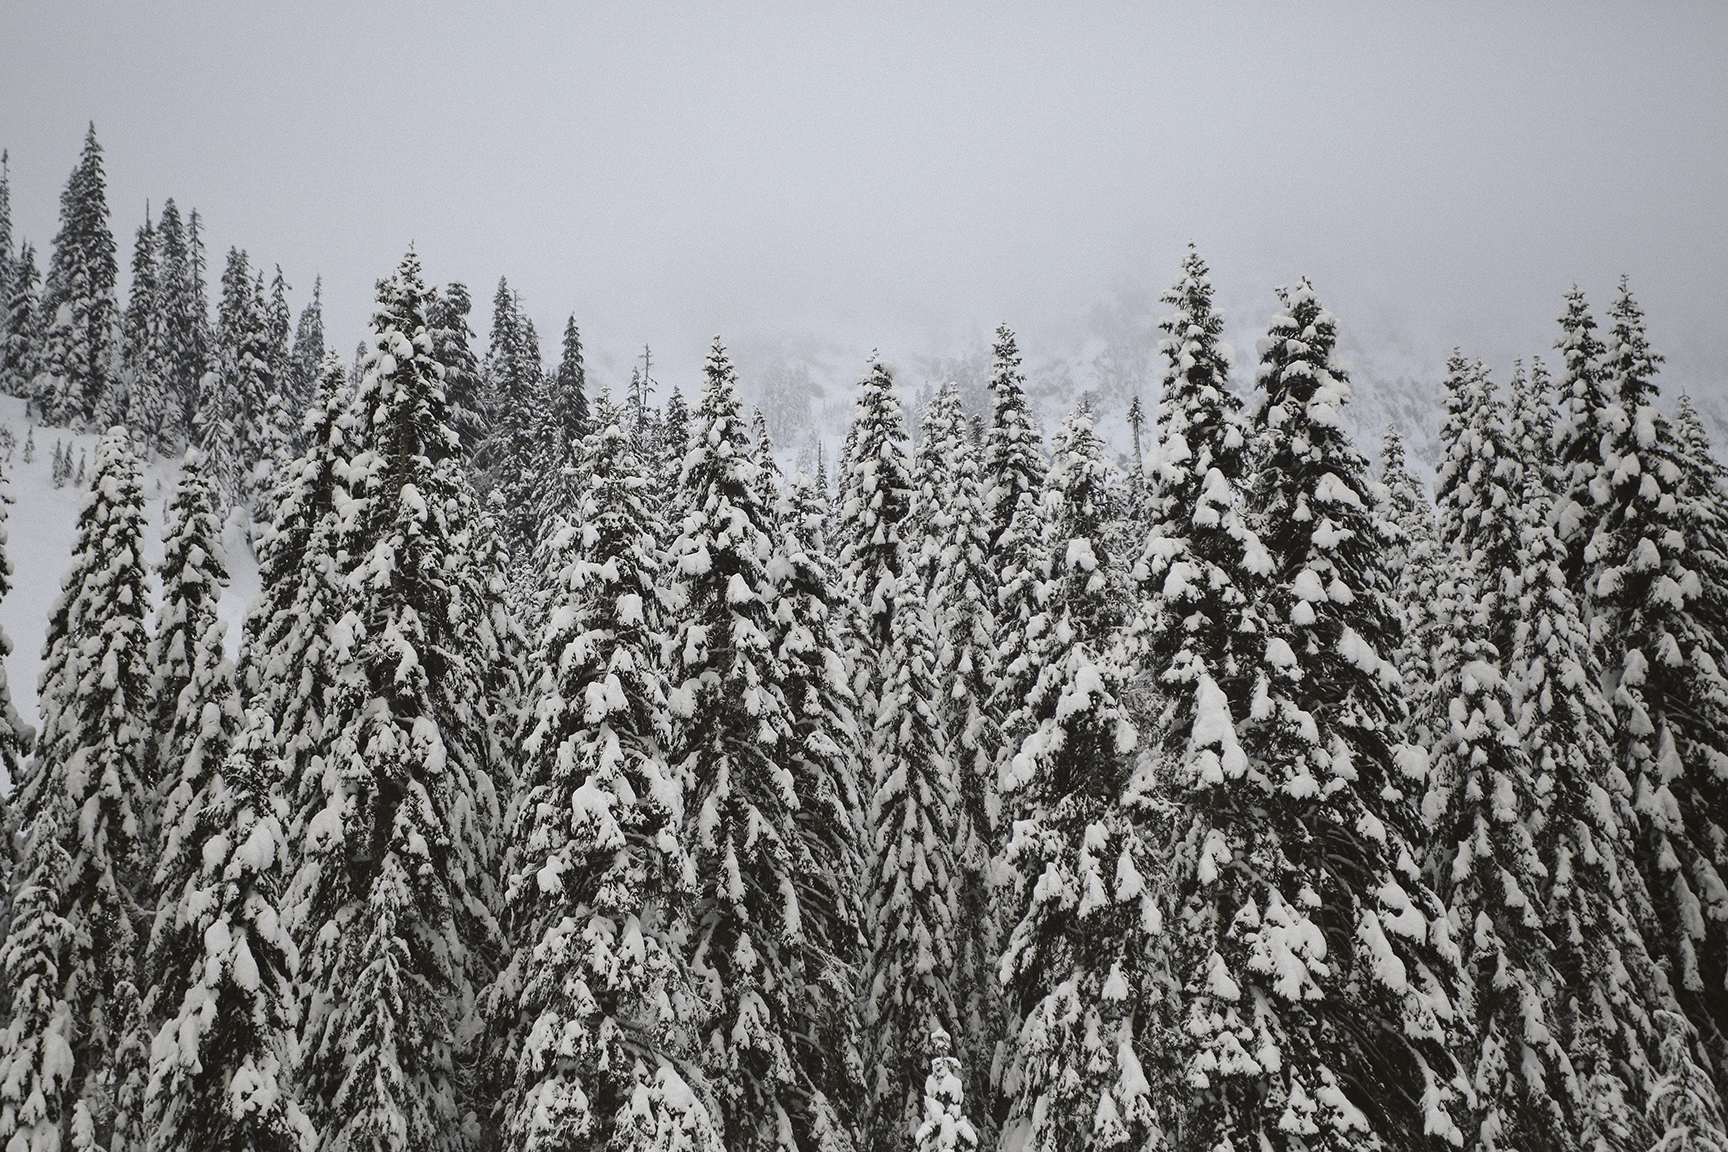 a-bird-of-passage-snowy-trees